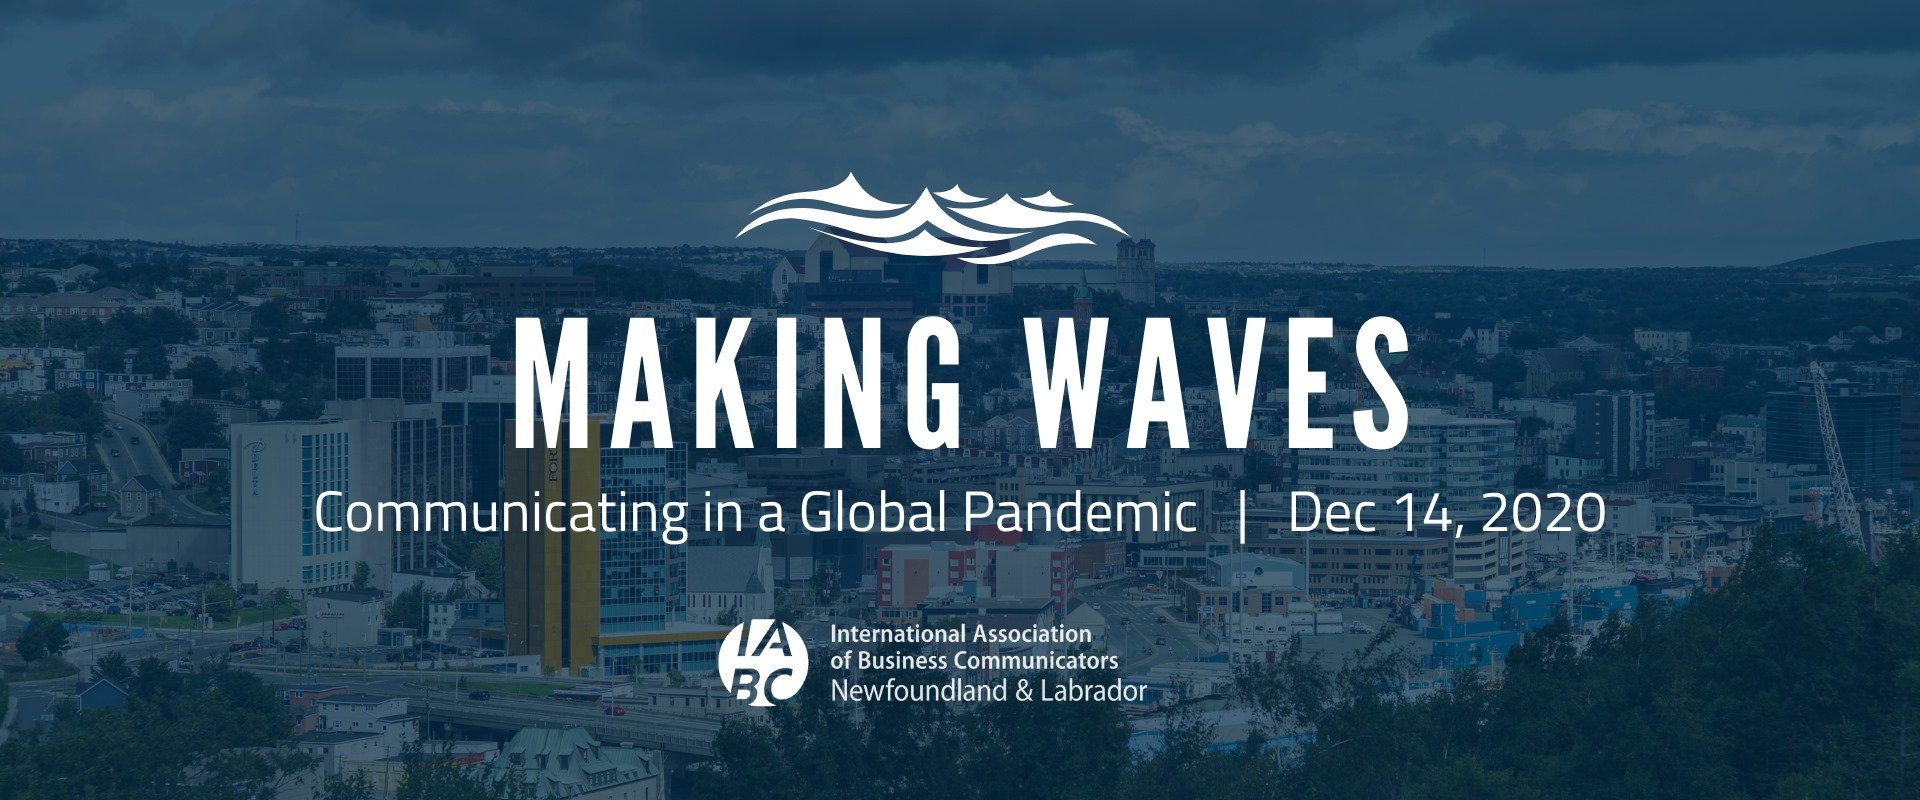 Making Waves – Communicating in a Global Pandemic